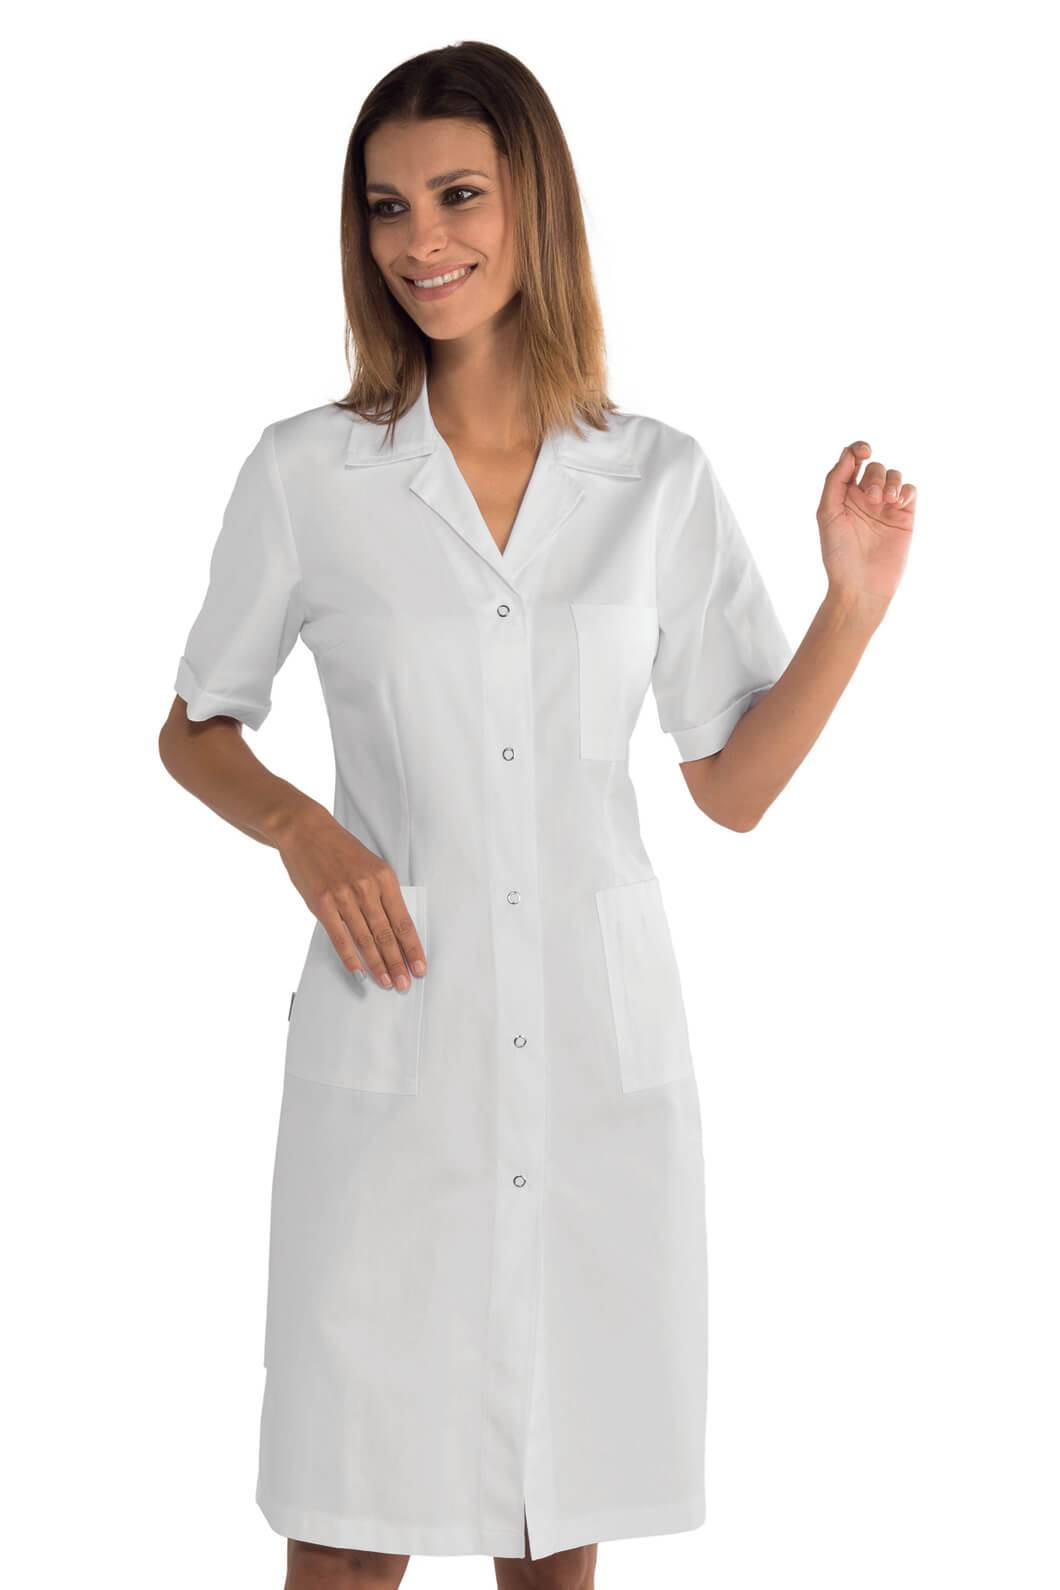 ISACCO Blouse blanche médicale boutons pression 100% coton